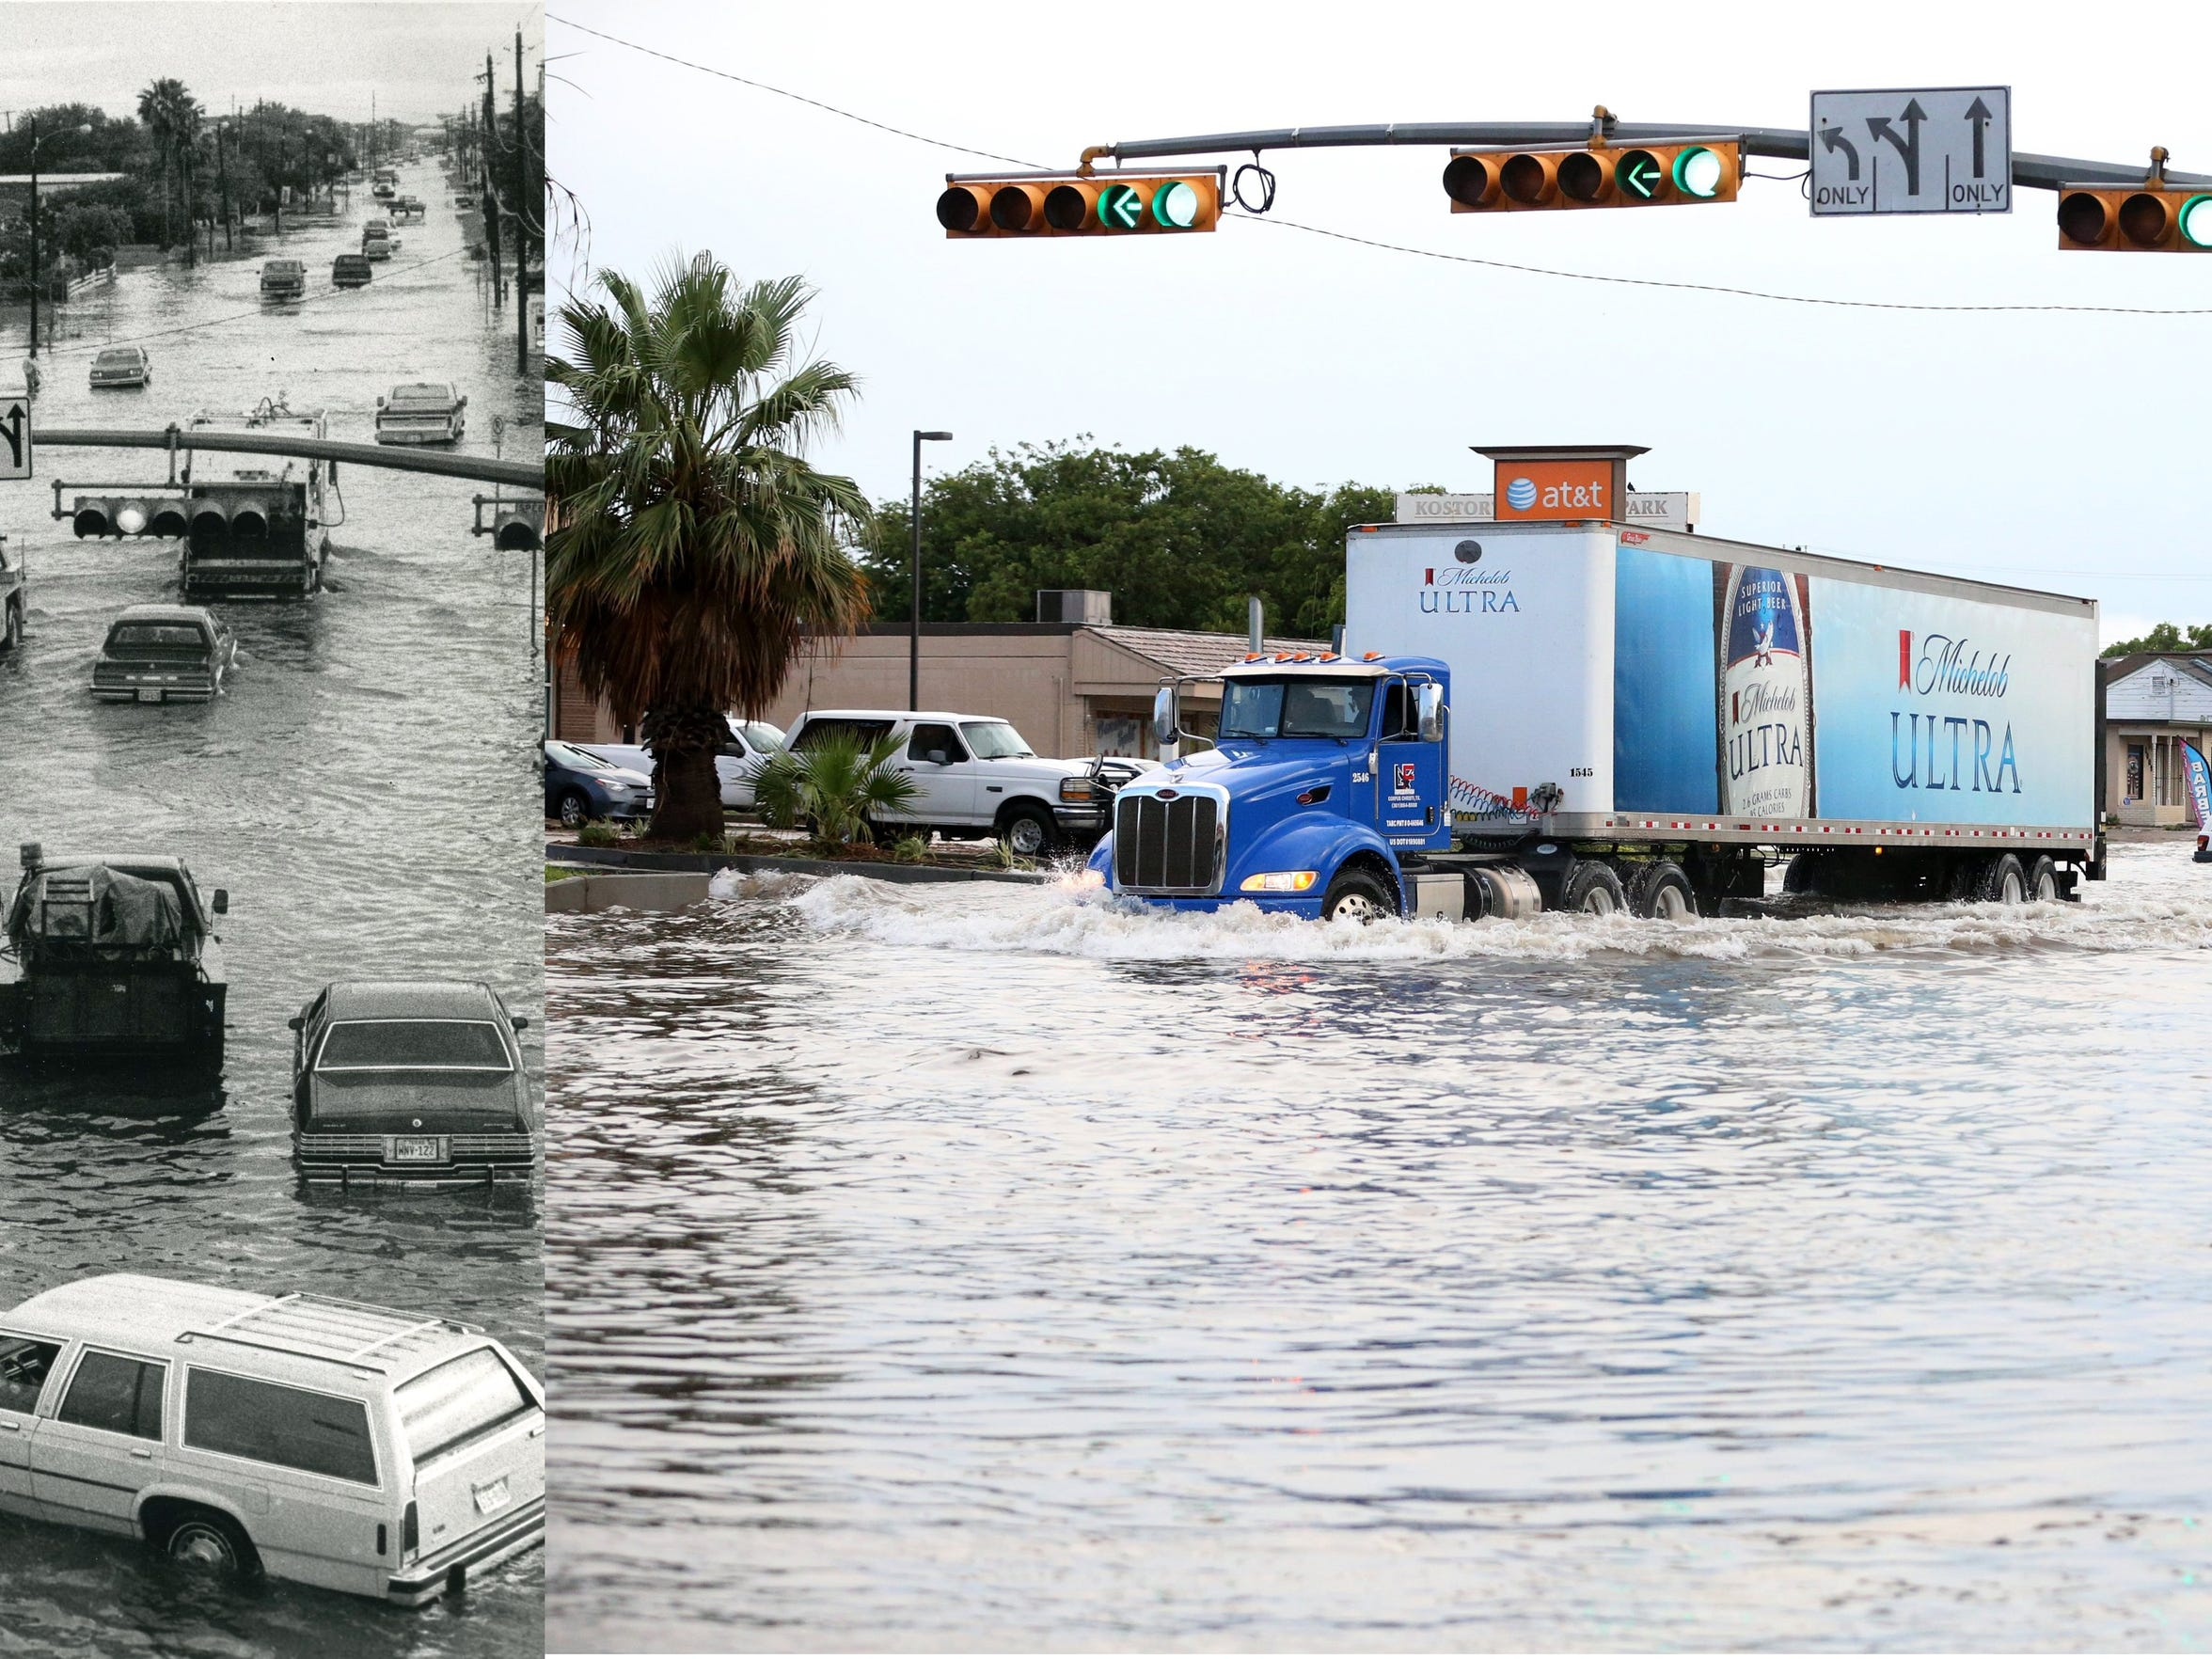 The intersection of Kostoryz Road and South Padre Island Drive has seen flooding for a number of years. The photo on the left was taken by Caller-Times photographer George Gongora on April 10, 1985. The photo on the right was taken by Caller-Times photographer Rachel Denny Clow on May 16, 2016.